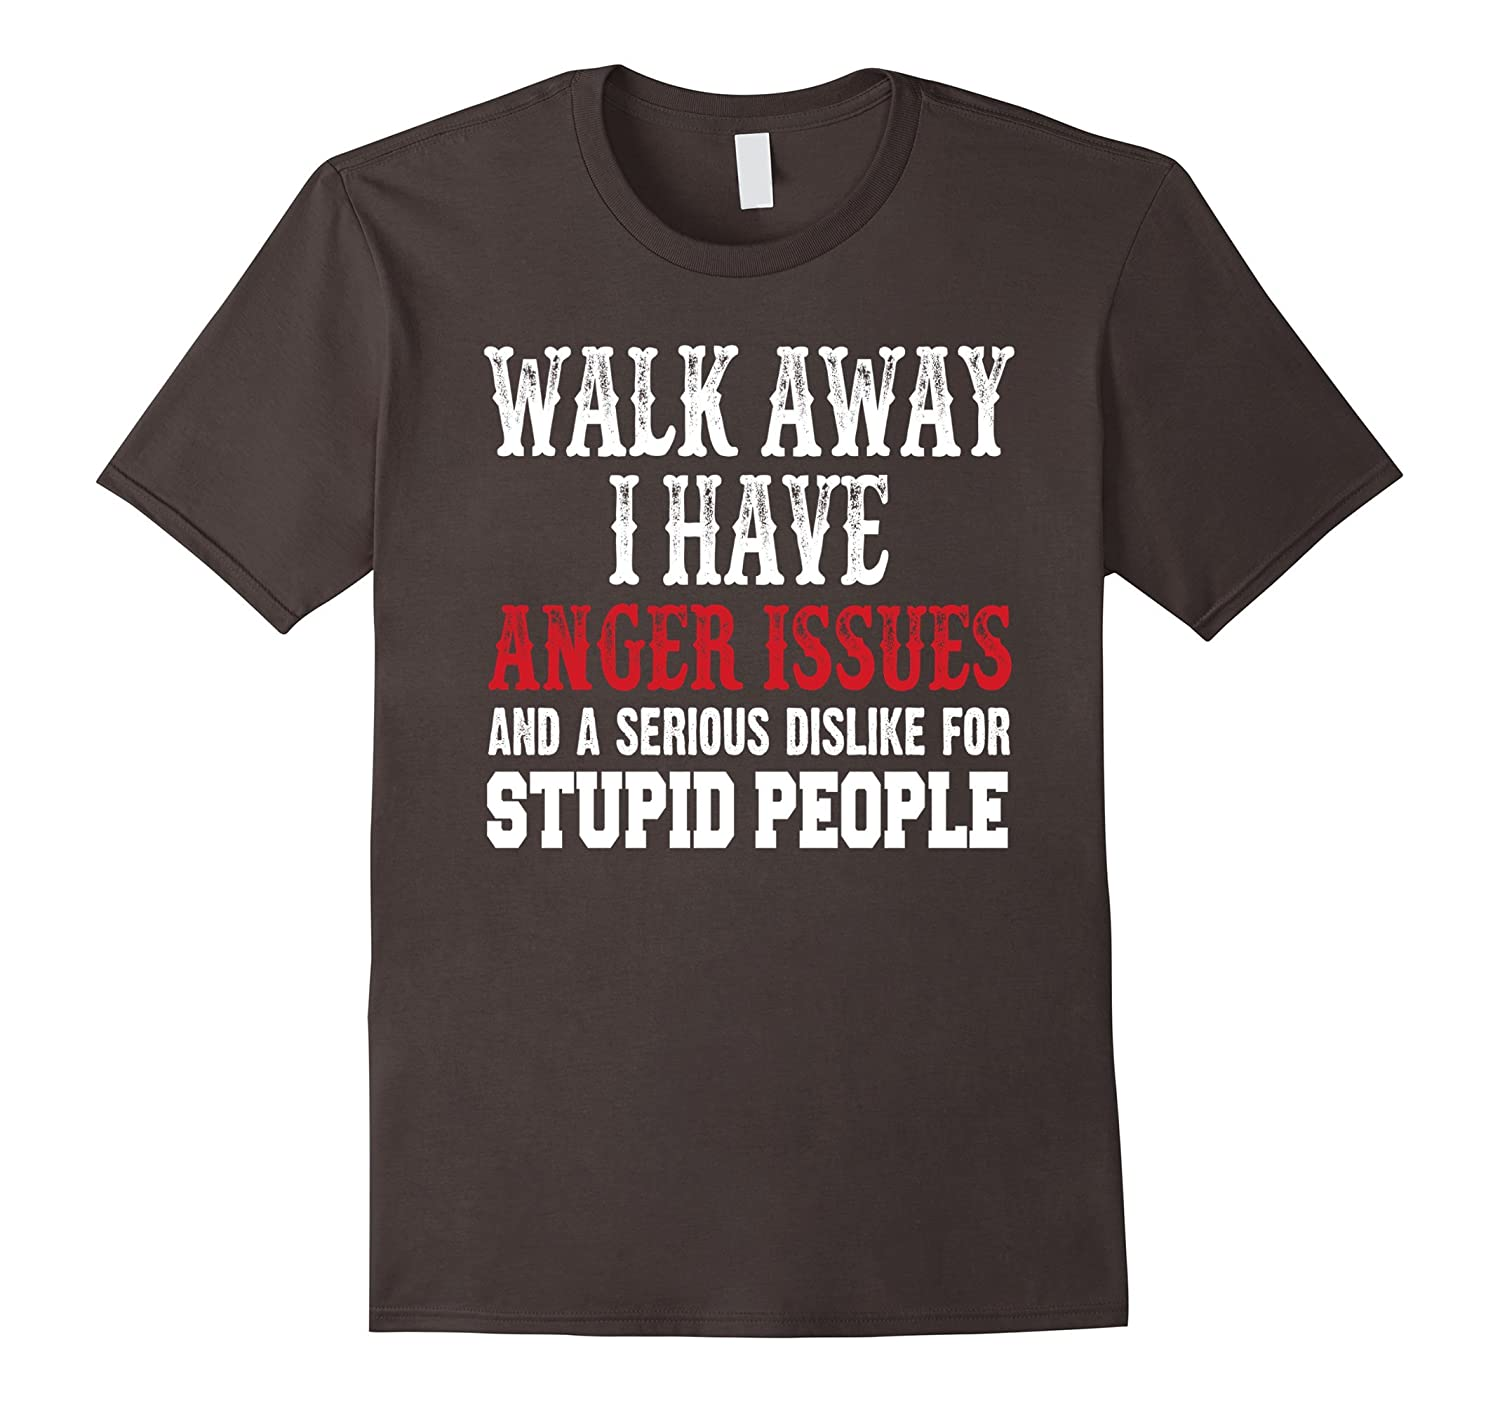 WALK AWAY I HAVE ANGER ISSUES AND DISLIKE STUPID PEOPLE Tee-Vaci